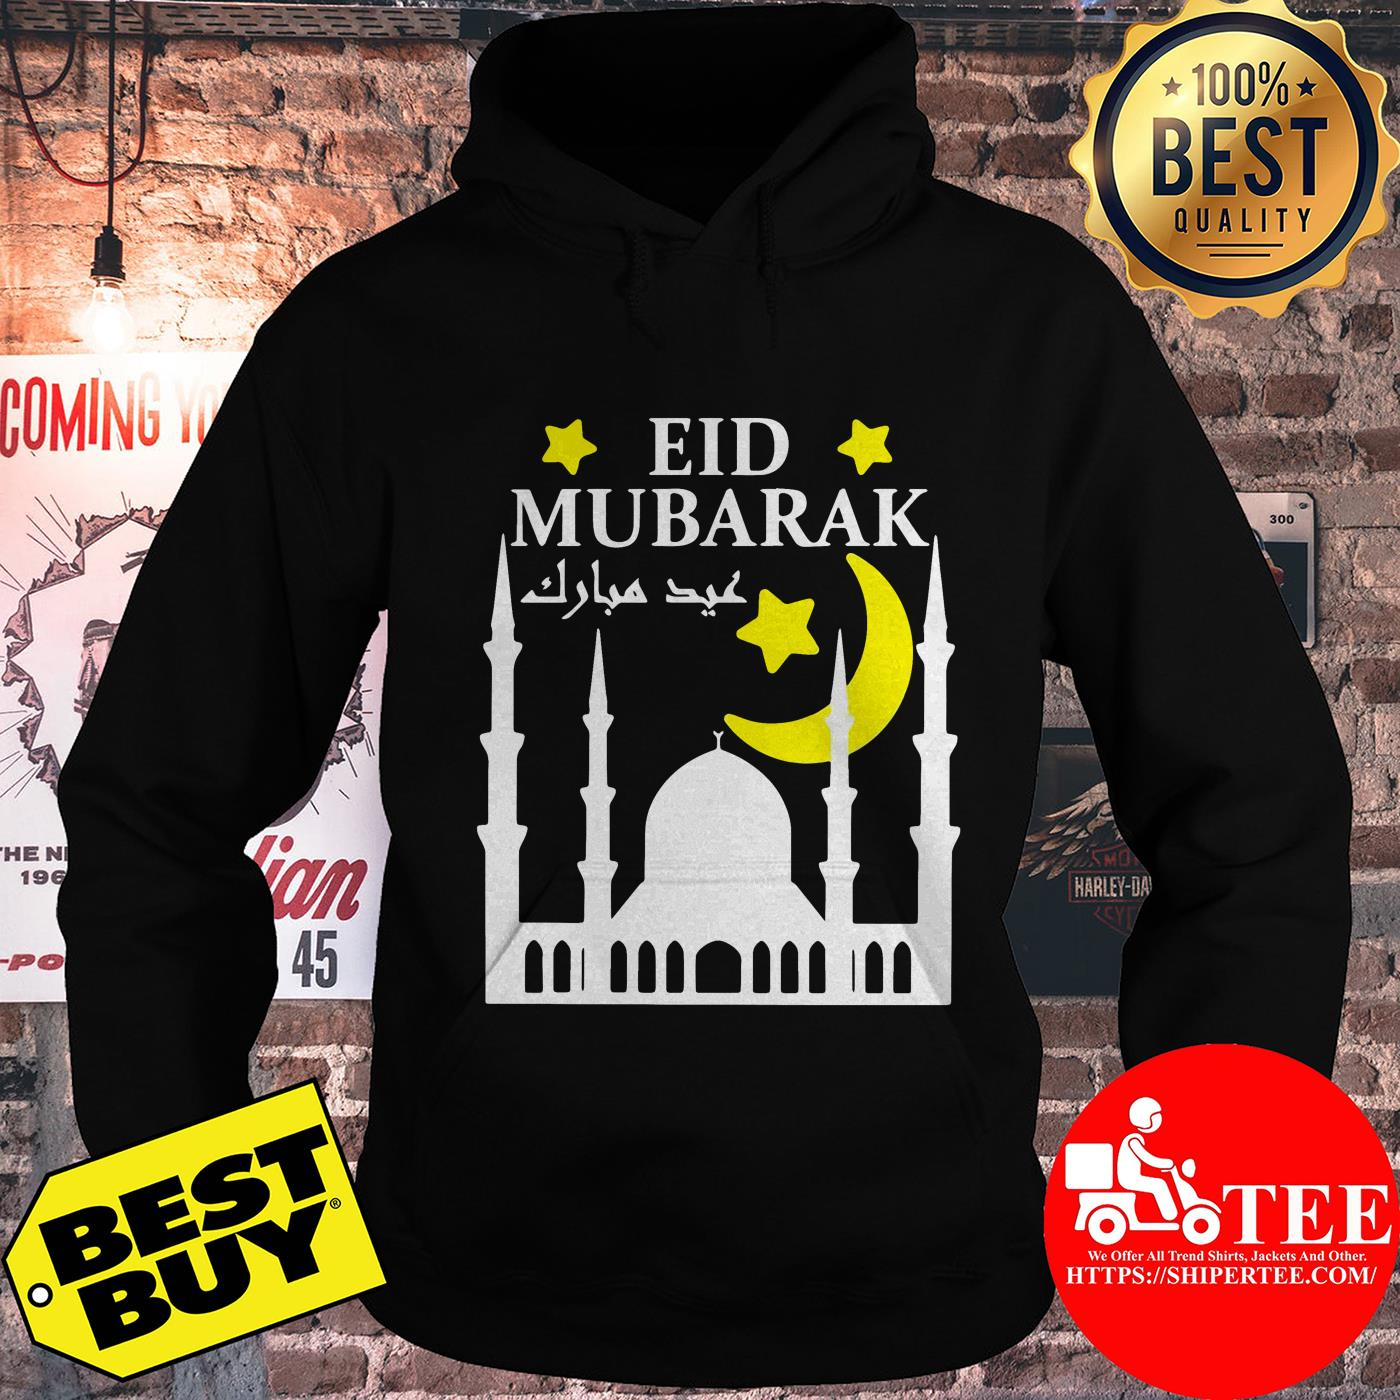 Eid Mubarak For Eid Al-Fitr Or Eid Al-Adha Happy Eid Day hoodie